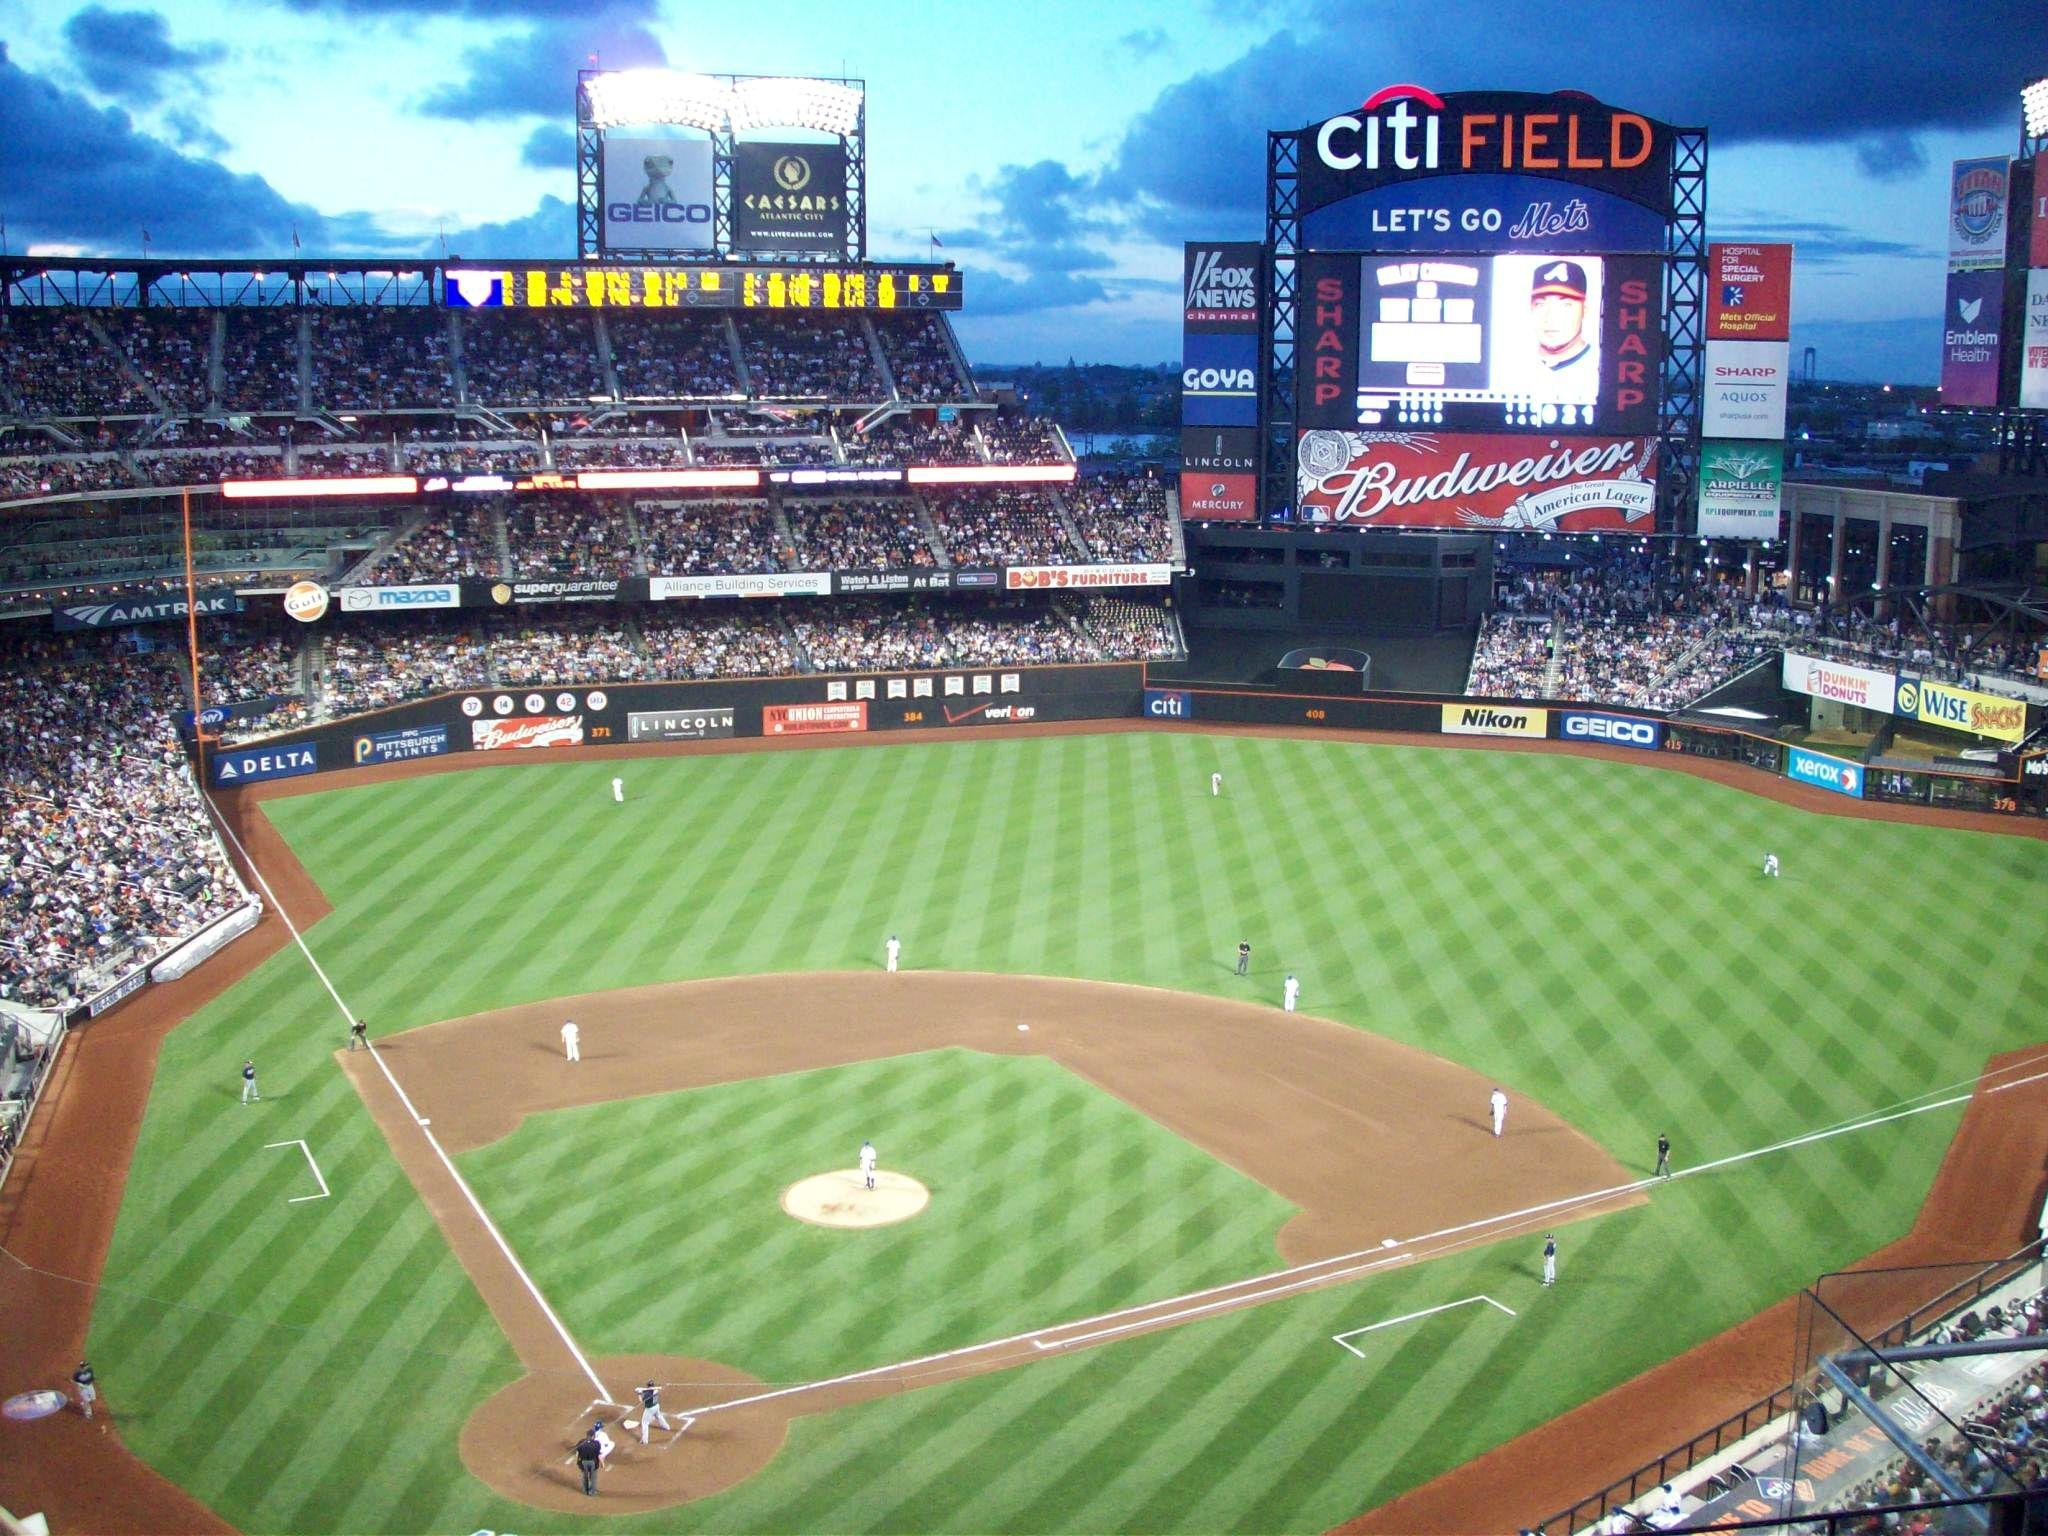 New york mets citi field wallpapers wallpaper cave new york city ny citi field and heartland brewery ballparks and thecheapjerseys Choice Image